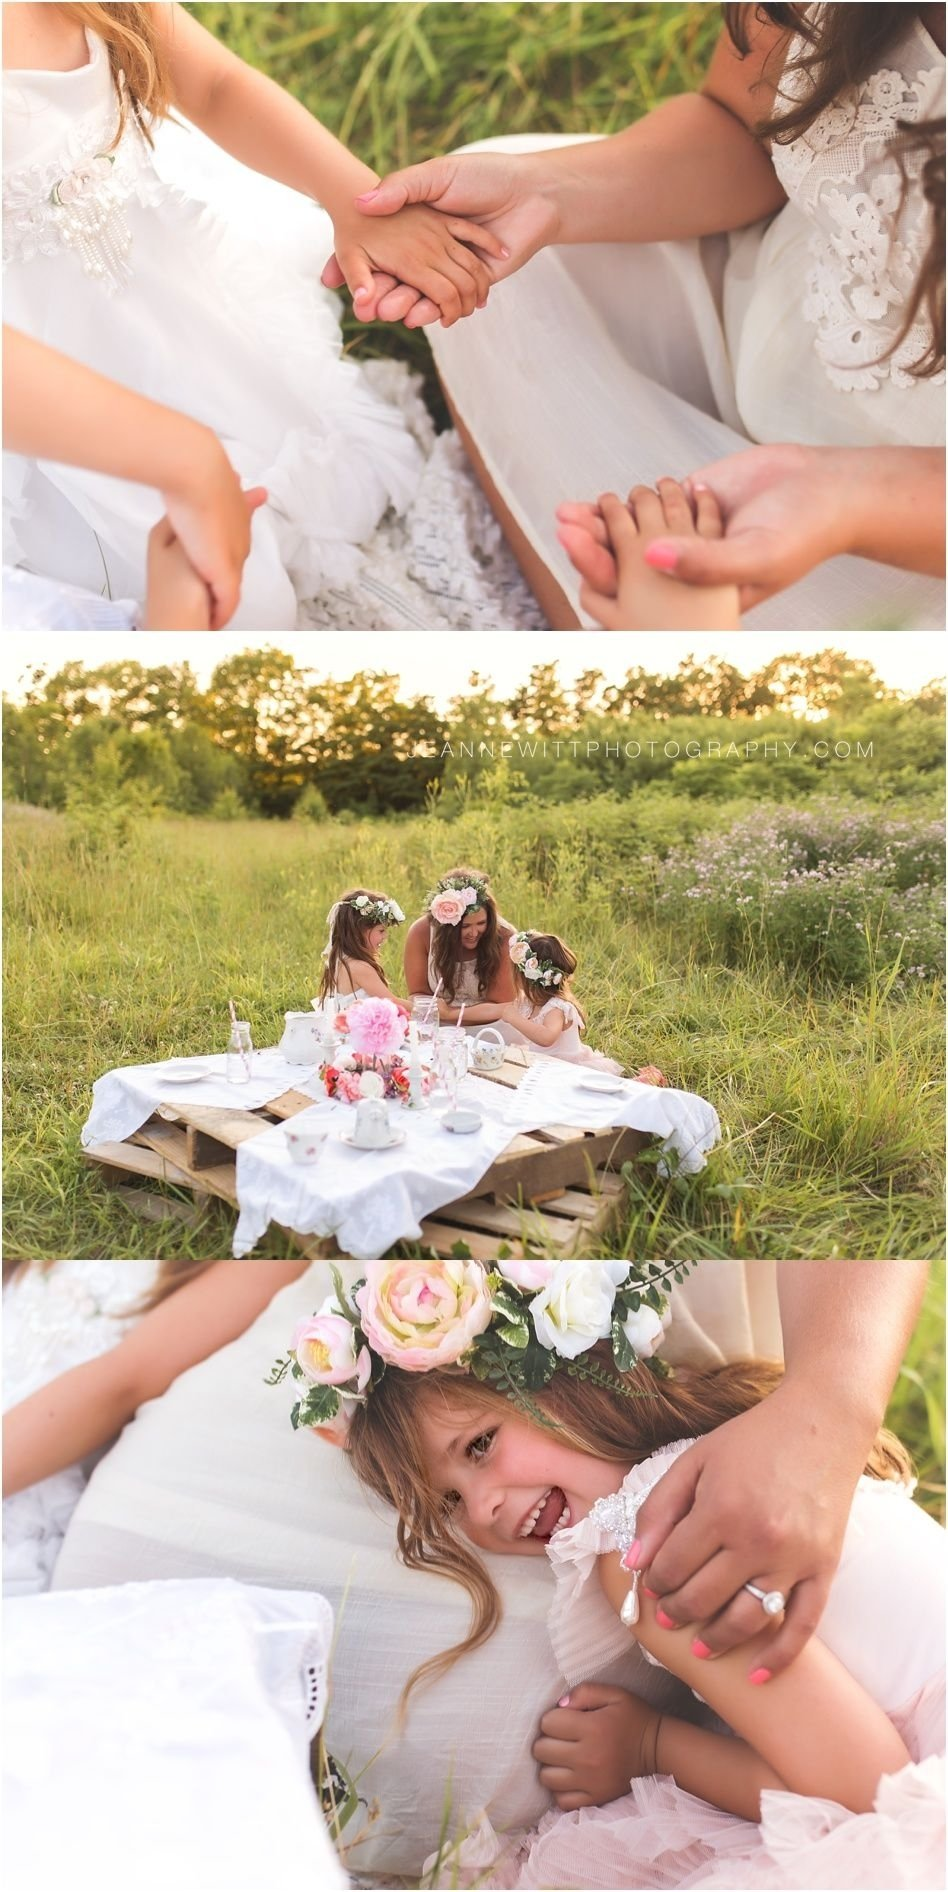 10 Amazing Mommy And Me Picture Ideas styled shoot mommy and me photo ideas tea party with mommy my